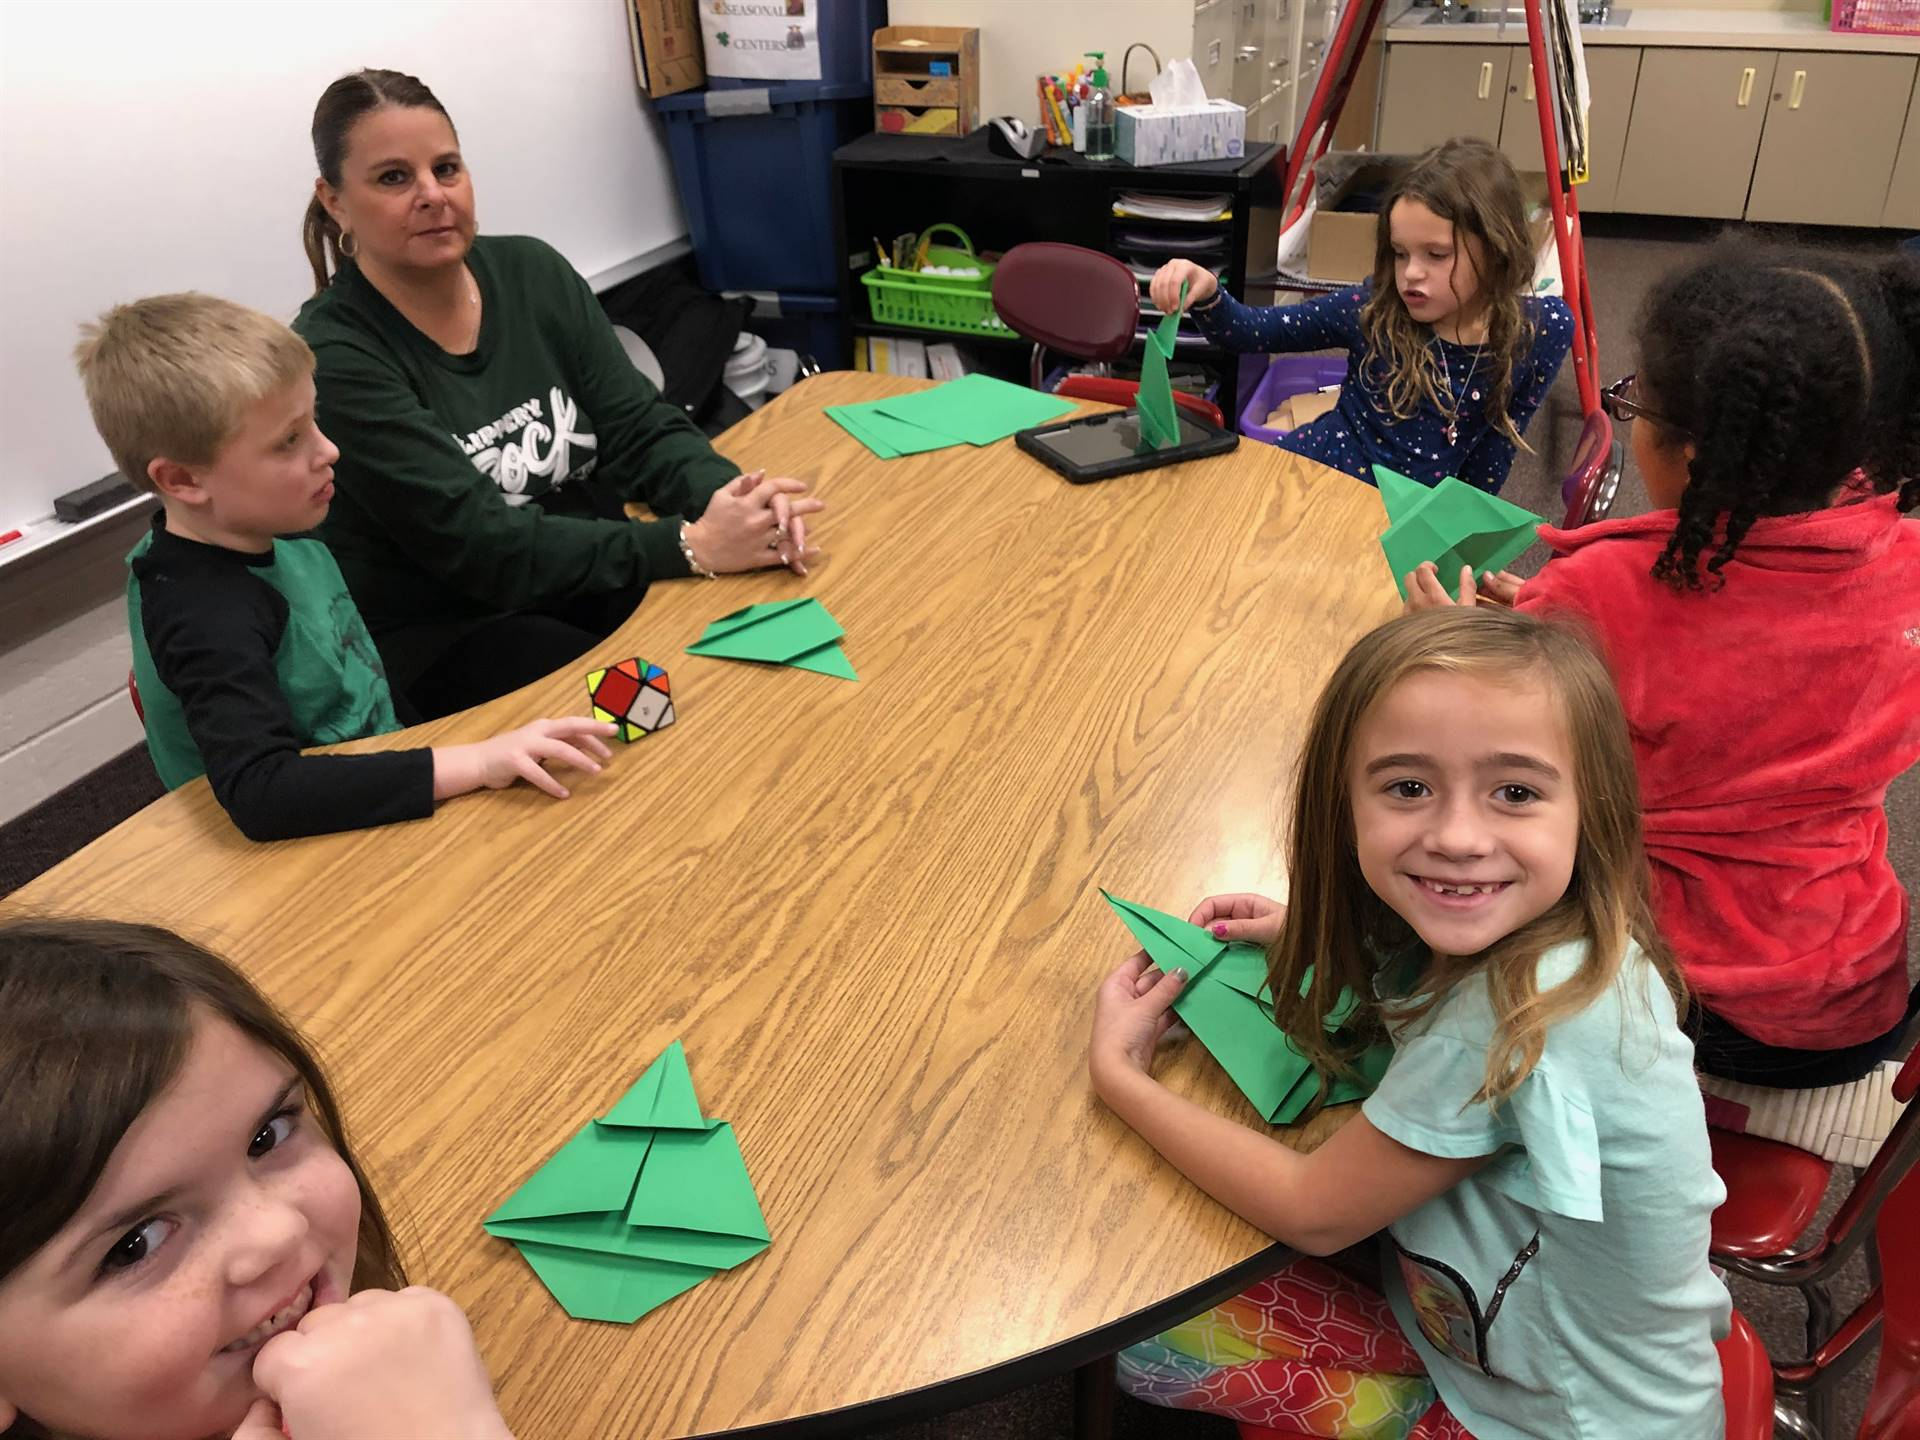 Students sitting around a table making origami Christmas trees